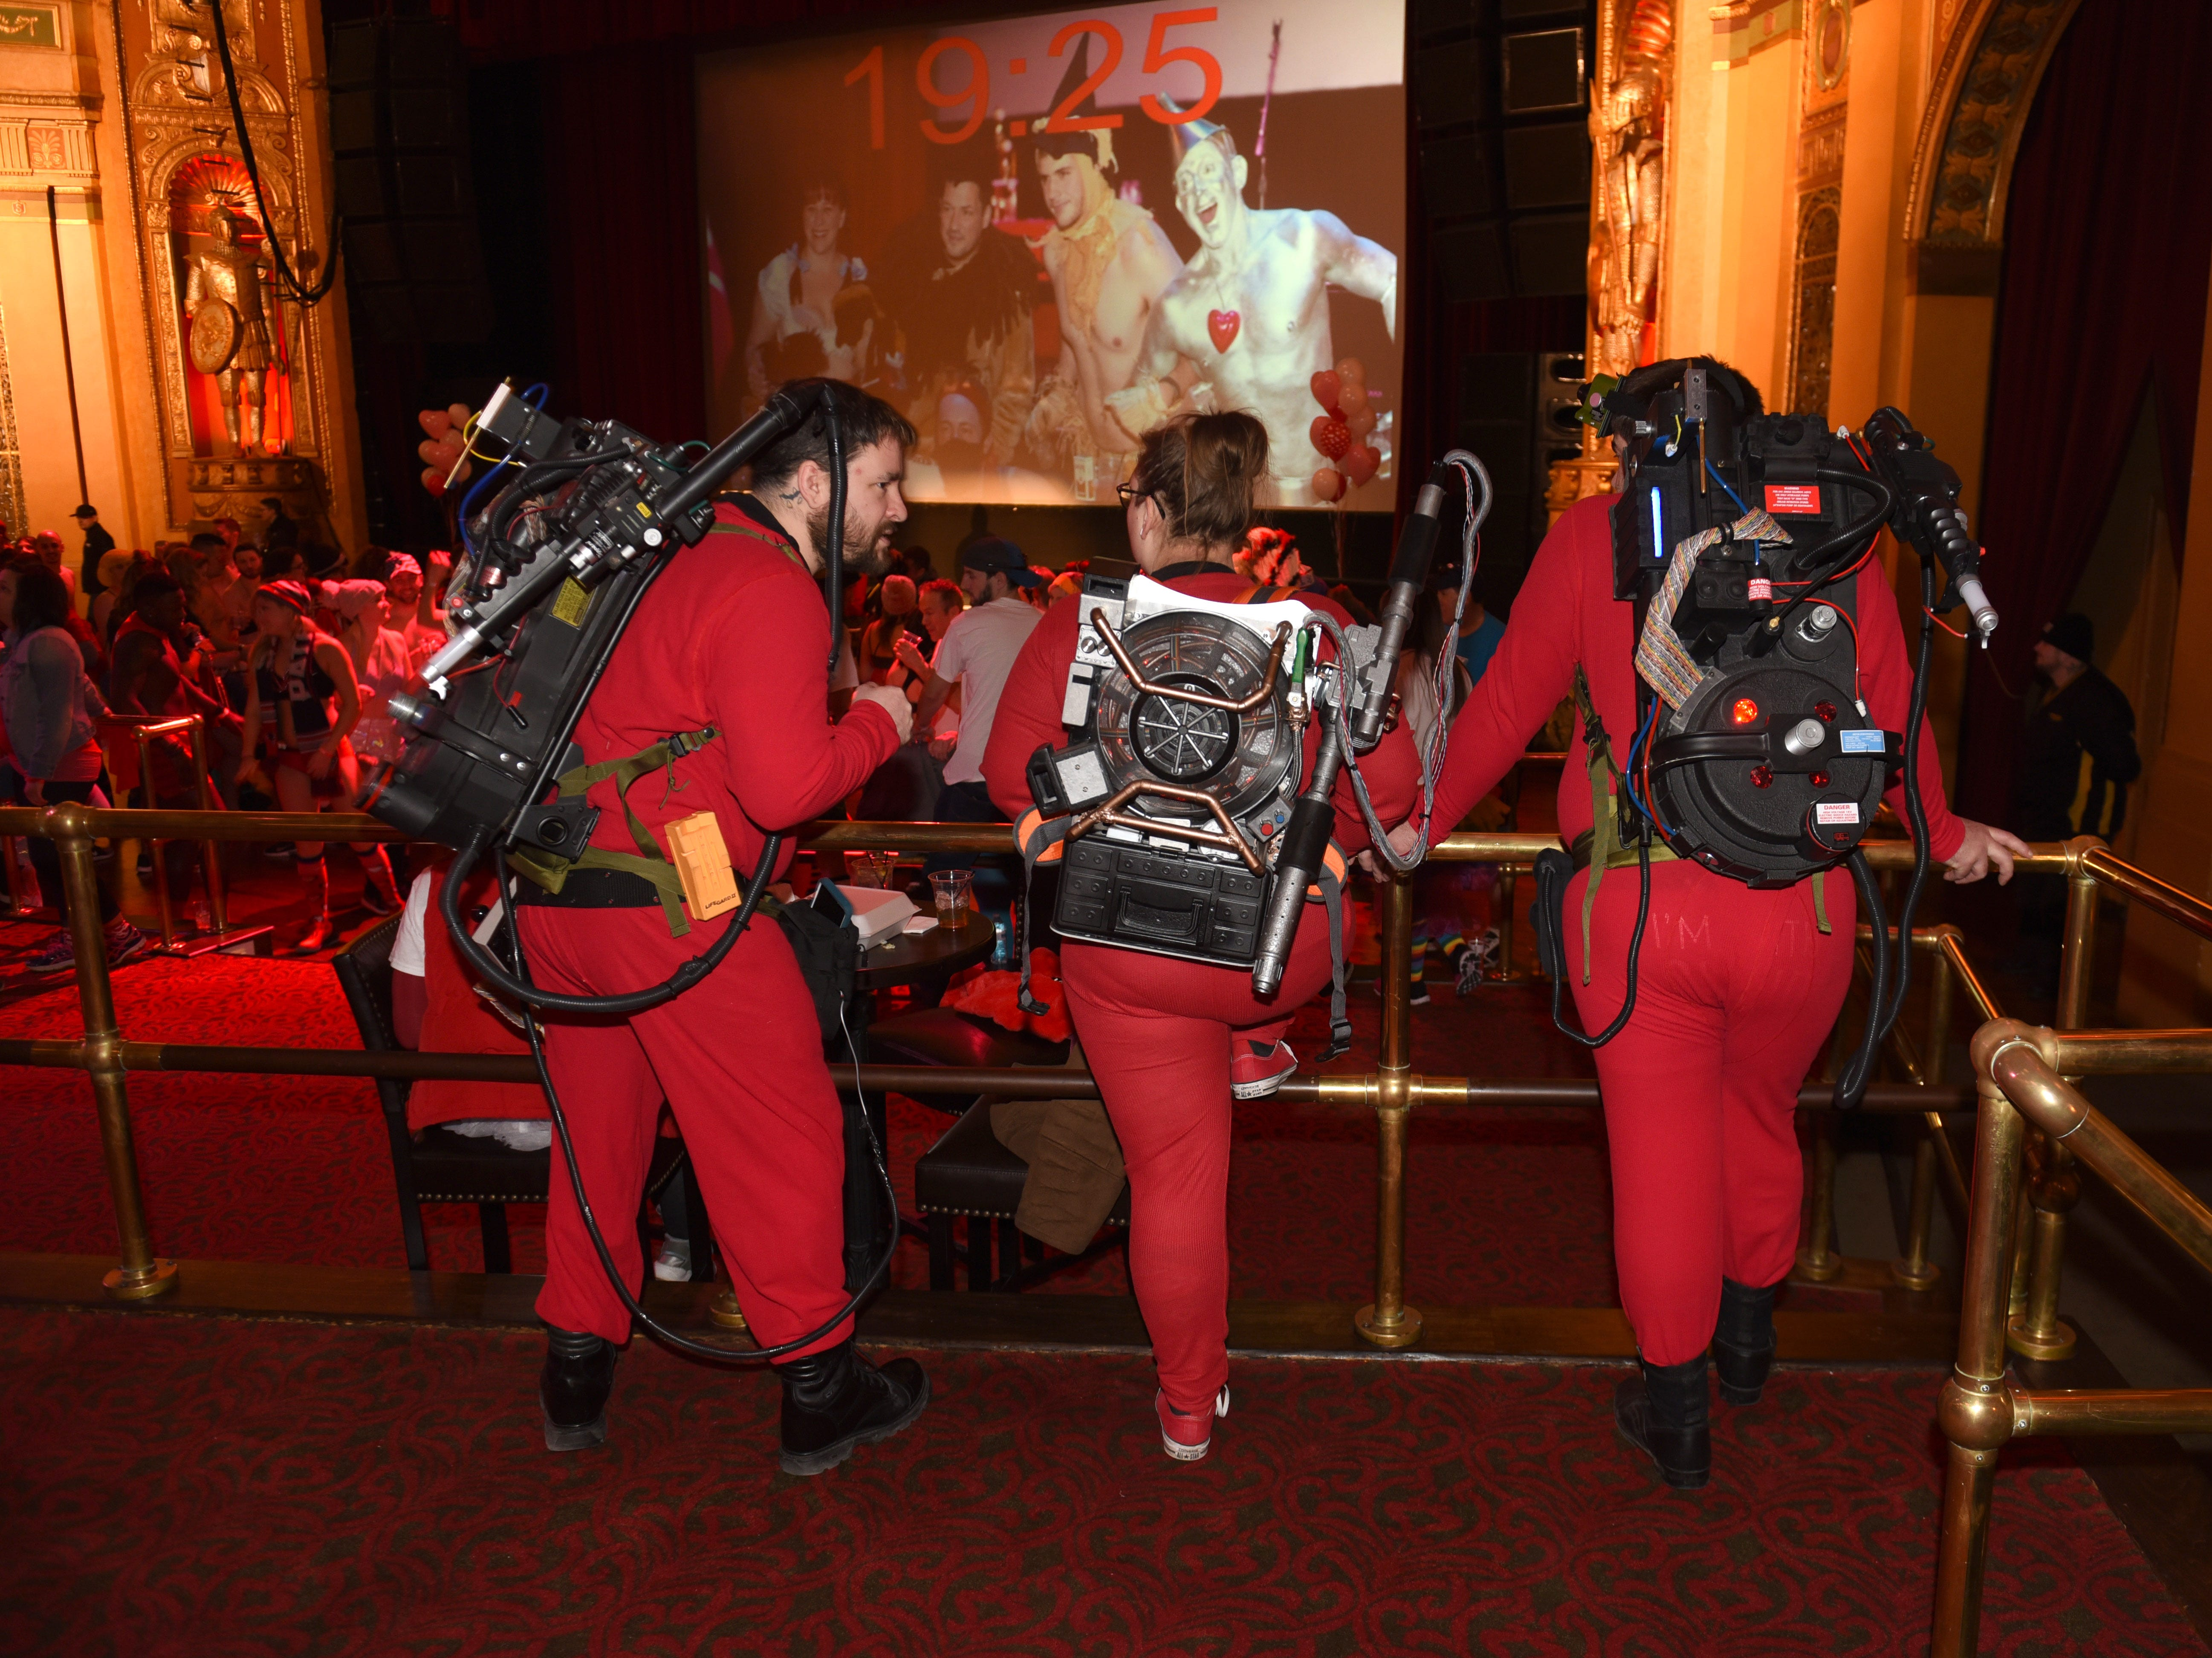 Member of the 313 Ghostbusters wore their proton packs at The Fillmore Detroit for Cupid's Undie Run.